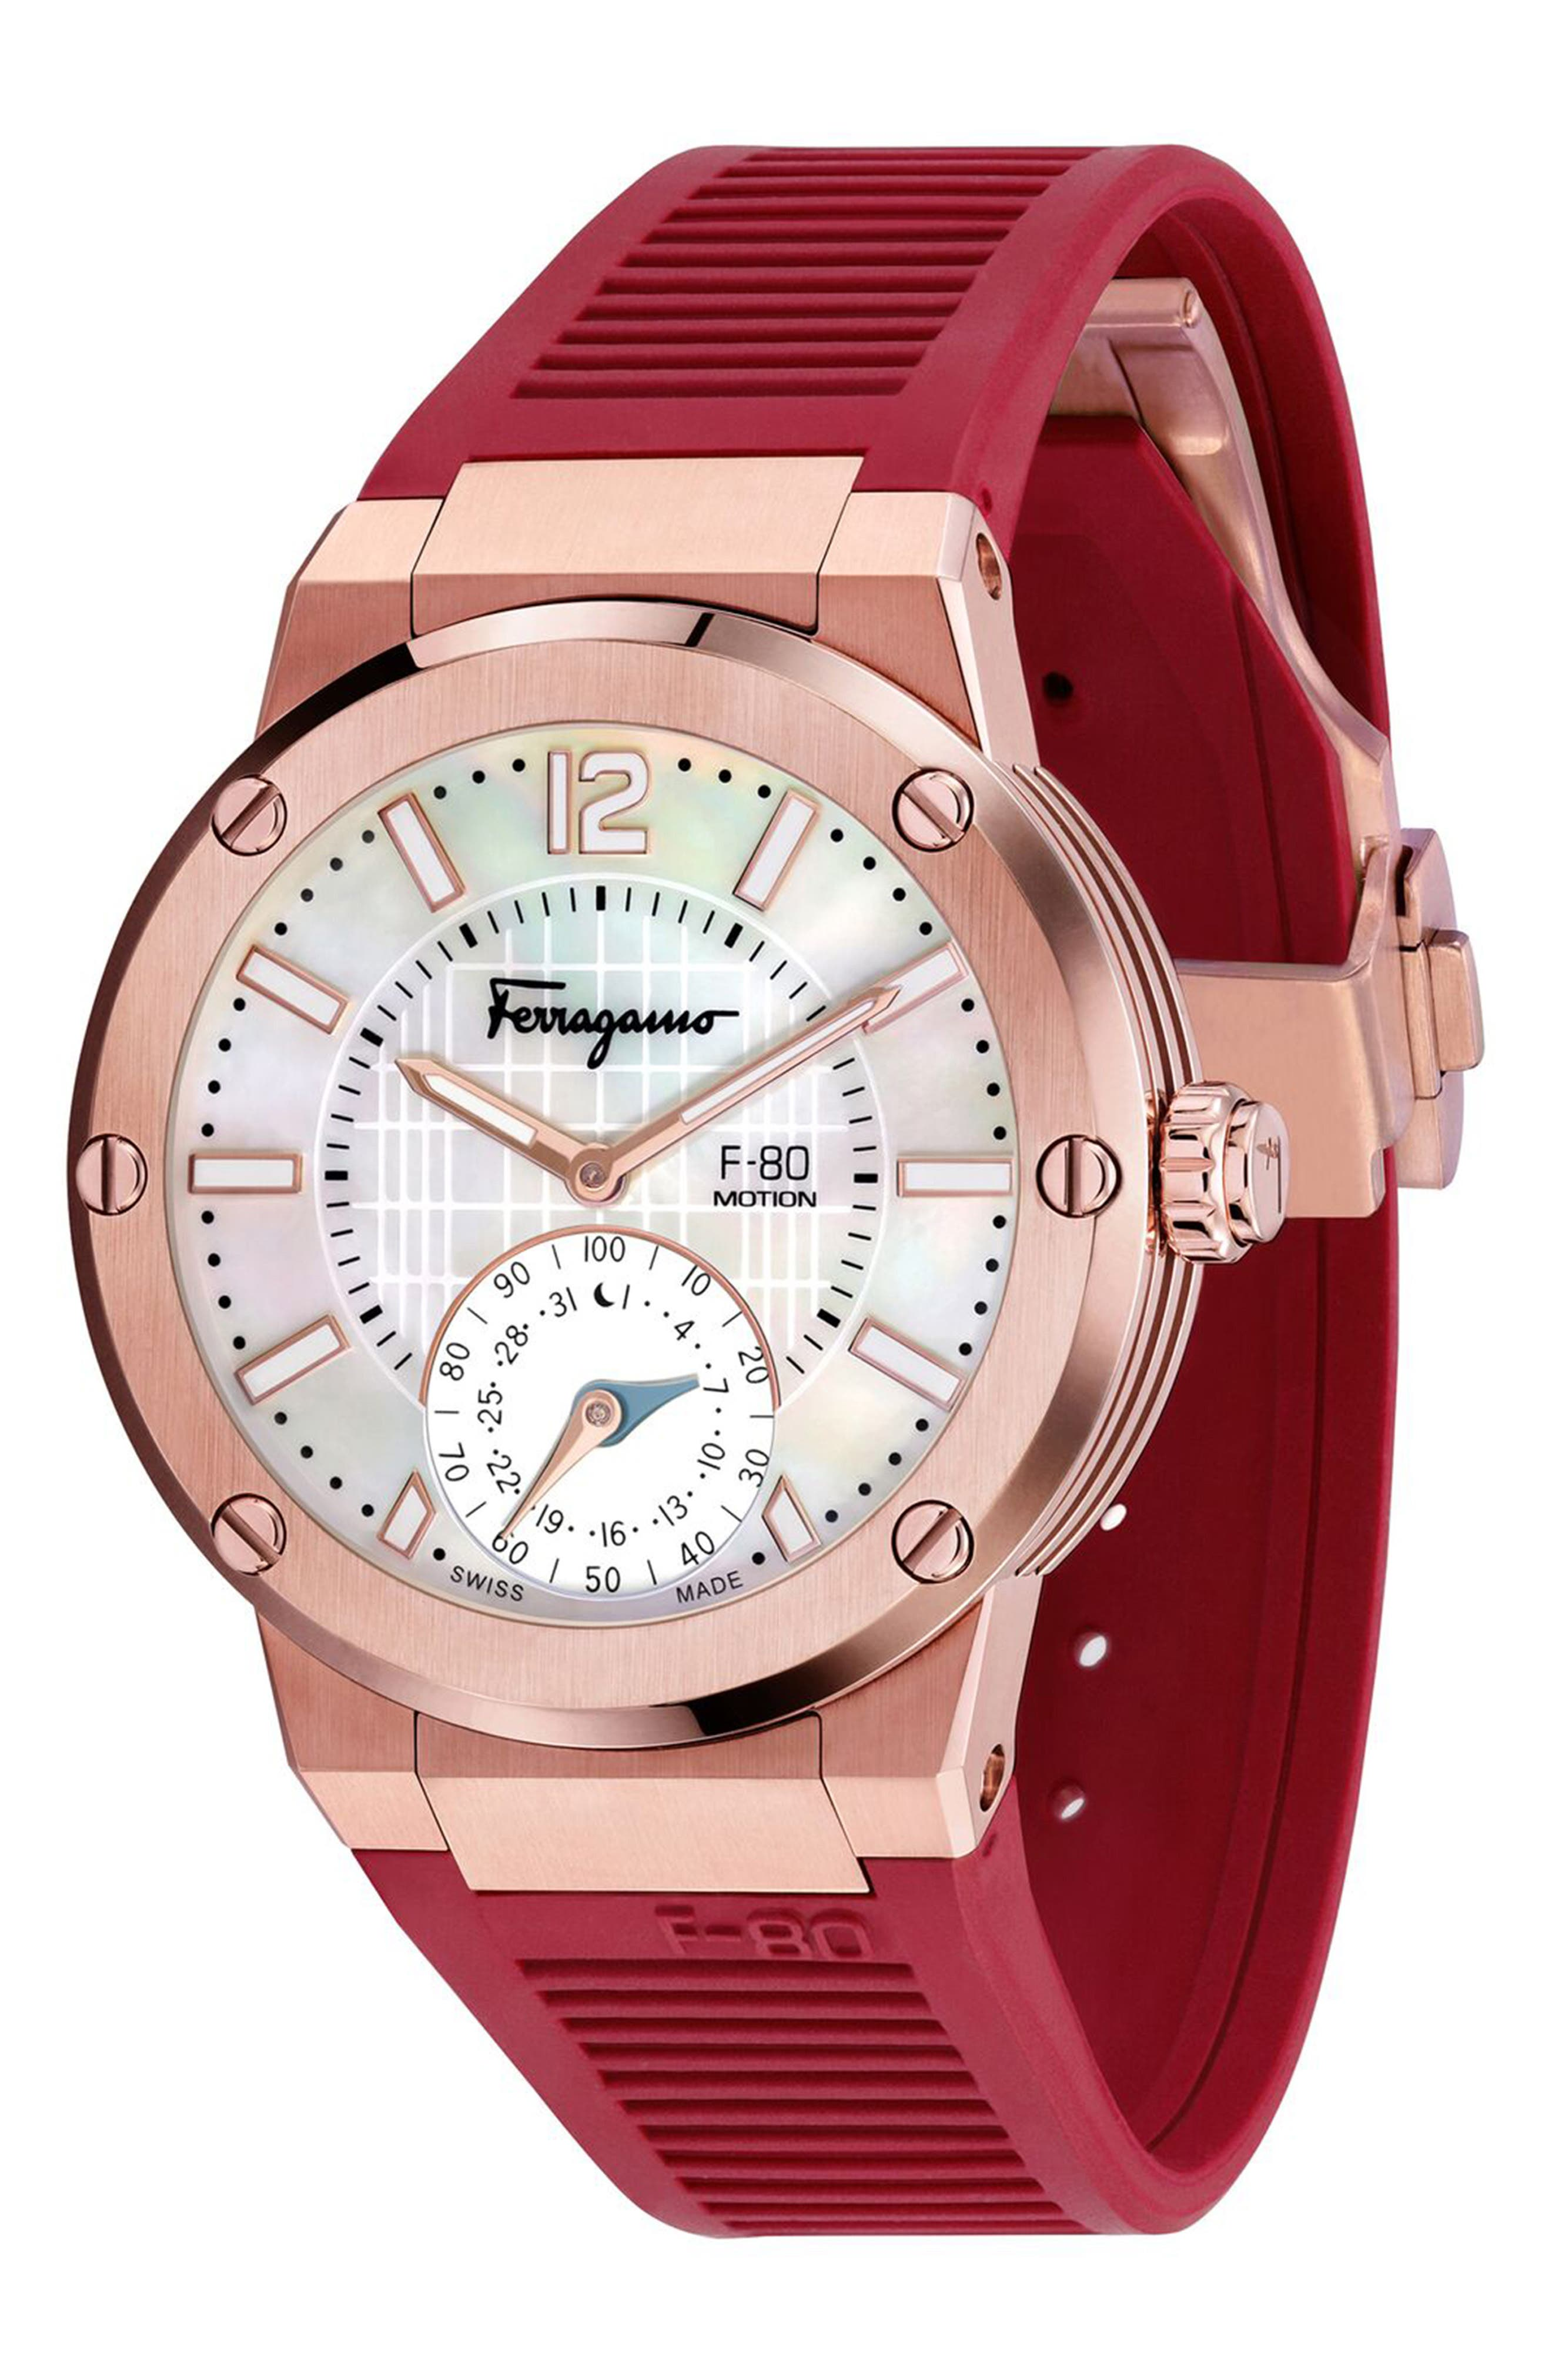 ,                             F-80 Motion Rubber Strap Smart Watch, 44mm,                             Main thumbnail 1, color,                             BURGUNDY/ WHITE MOP/ ROSE GOLD